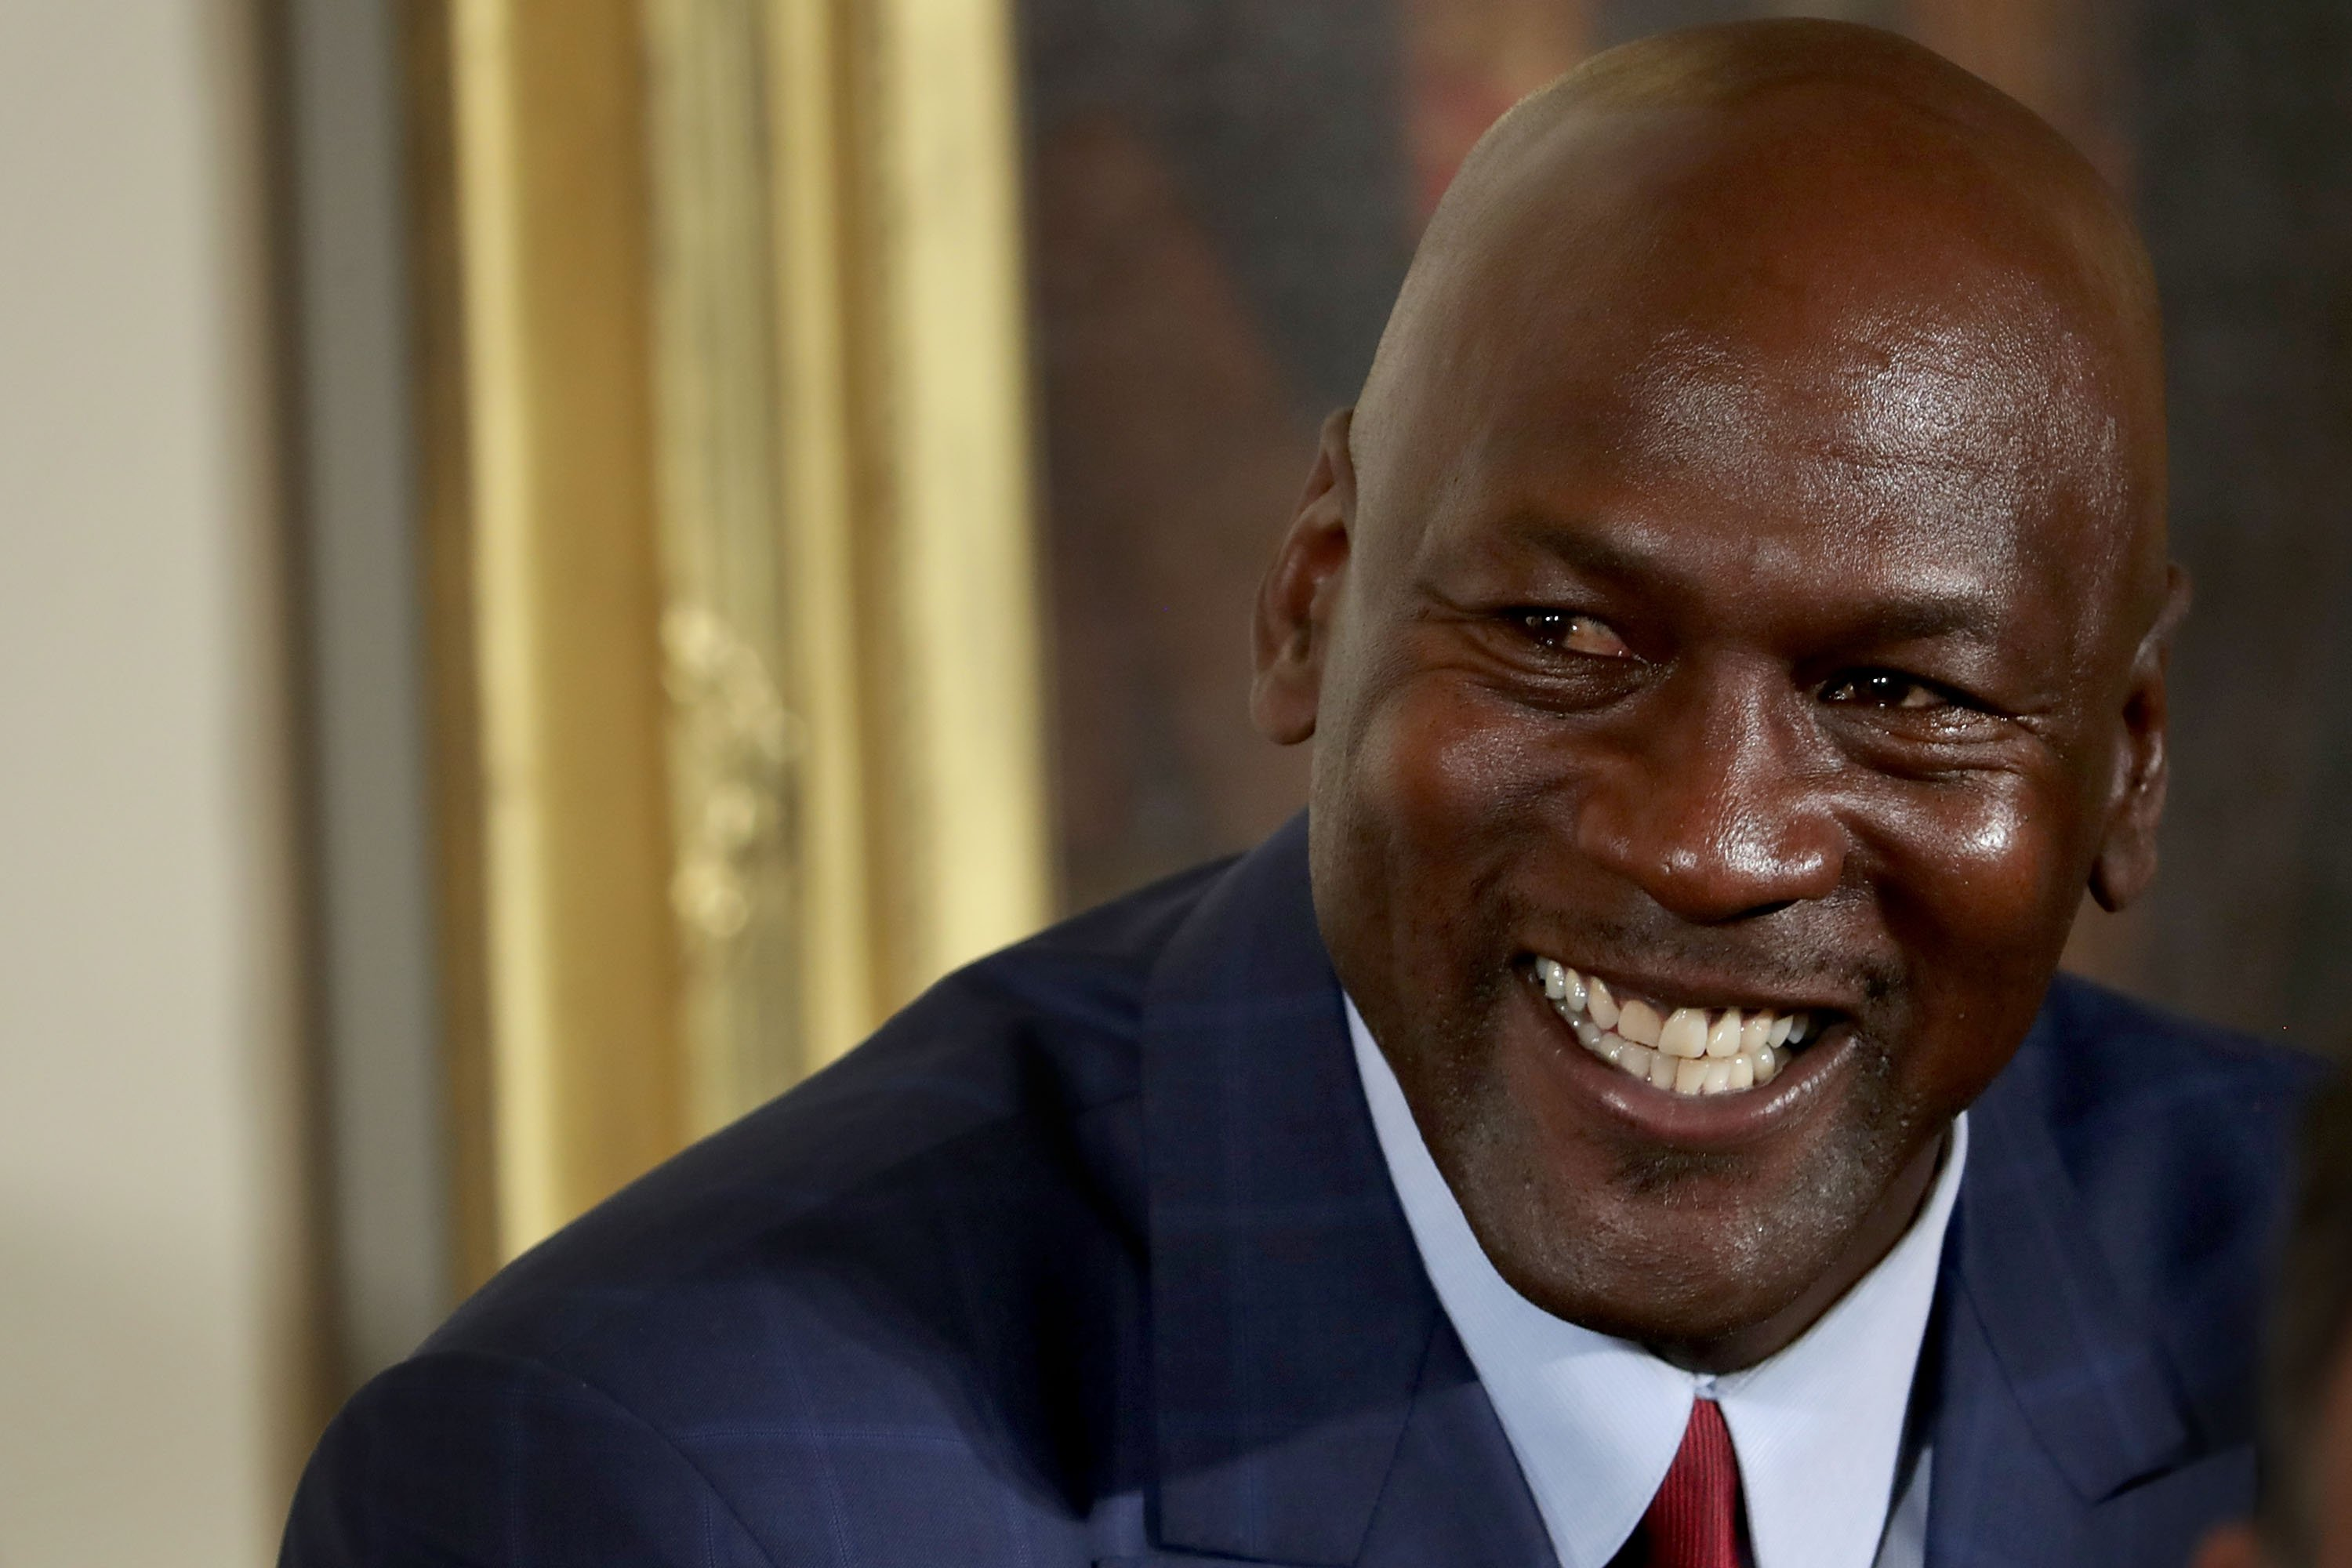 Michael Jordan is awarded the Presidential Medal of Freedom by U.S. President Barack Obama in the East Room of the White House November 22, 2016 | Photo: GettyImages